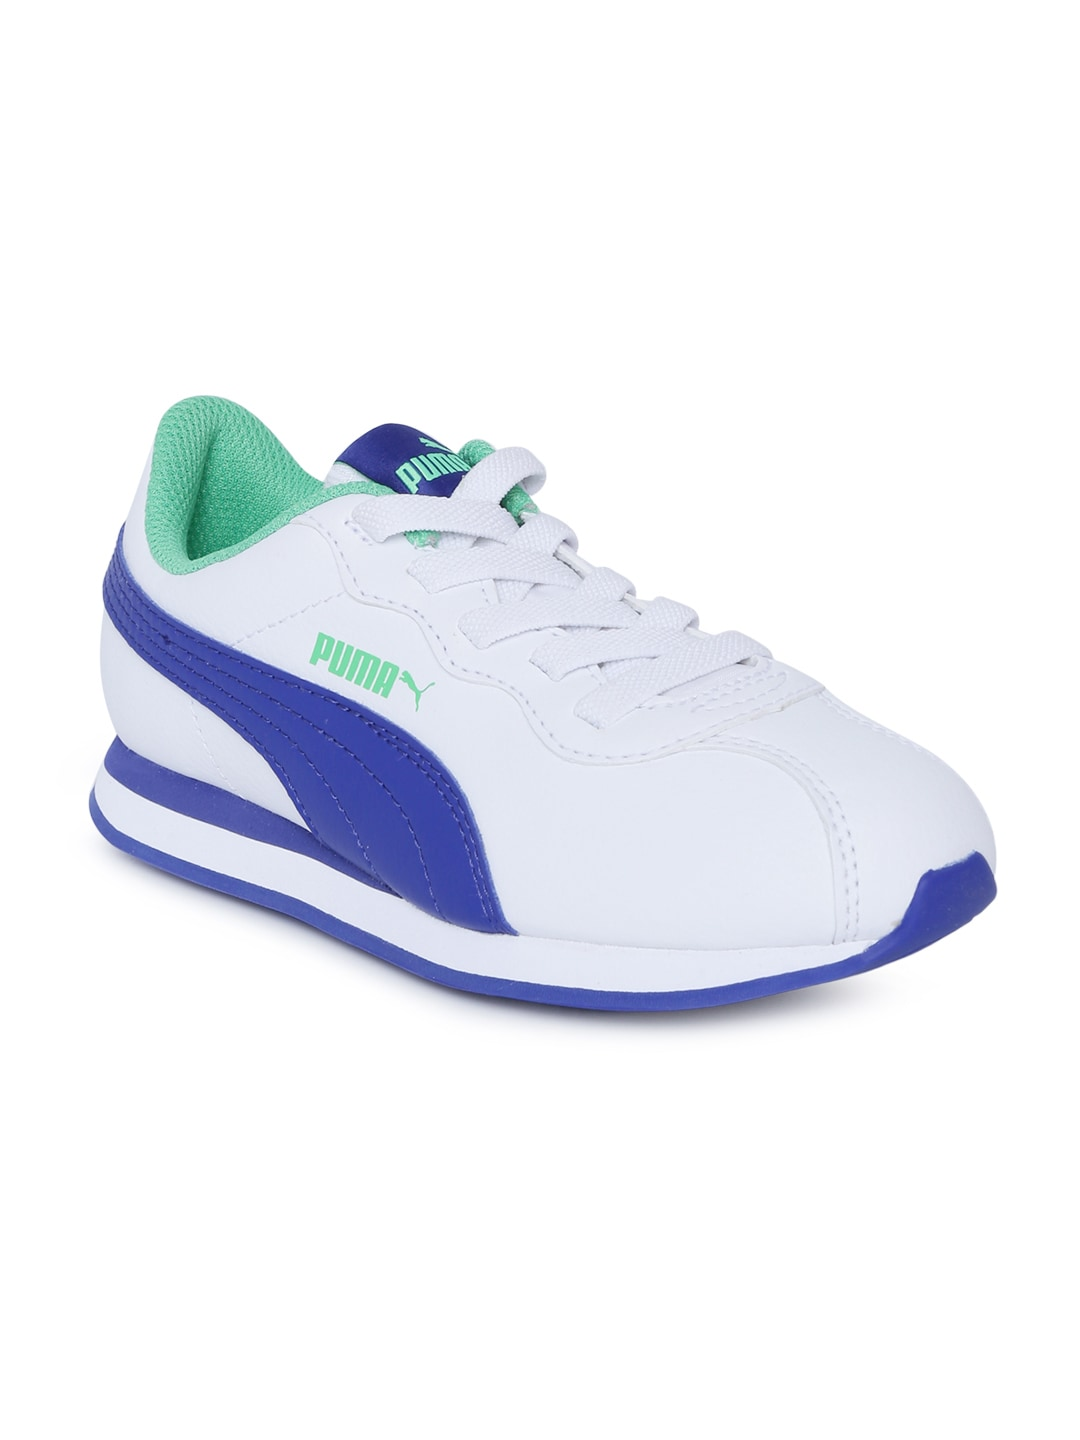 Ac In Shoes Casual - Buy Ac In Shoes Casual online in India 92b30b940